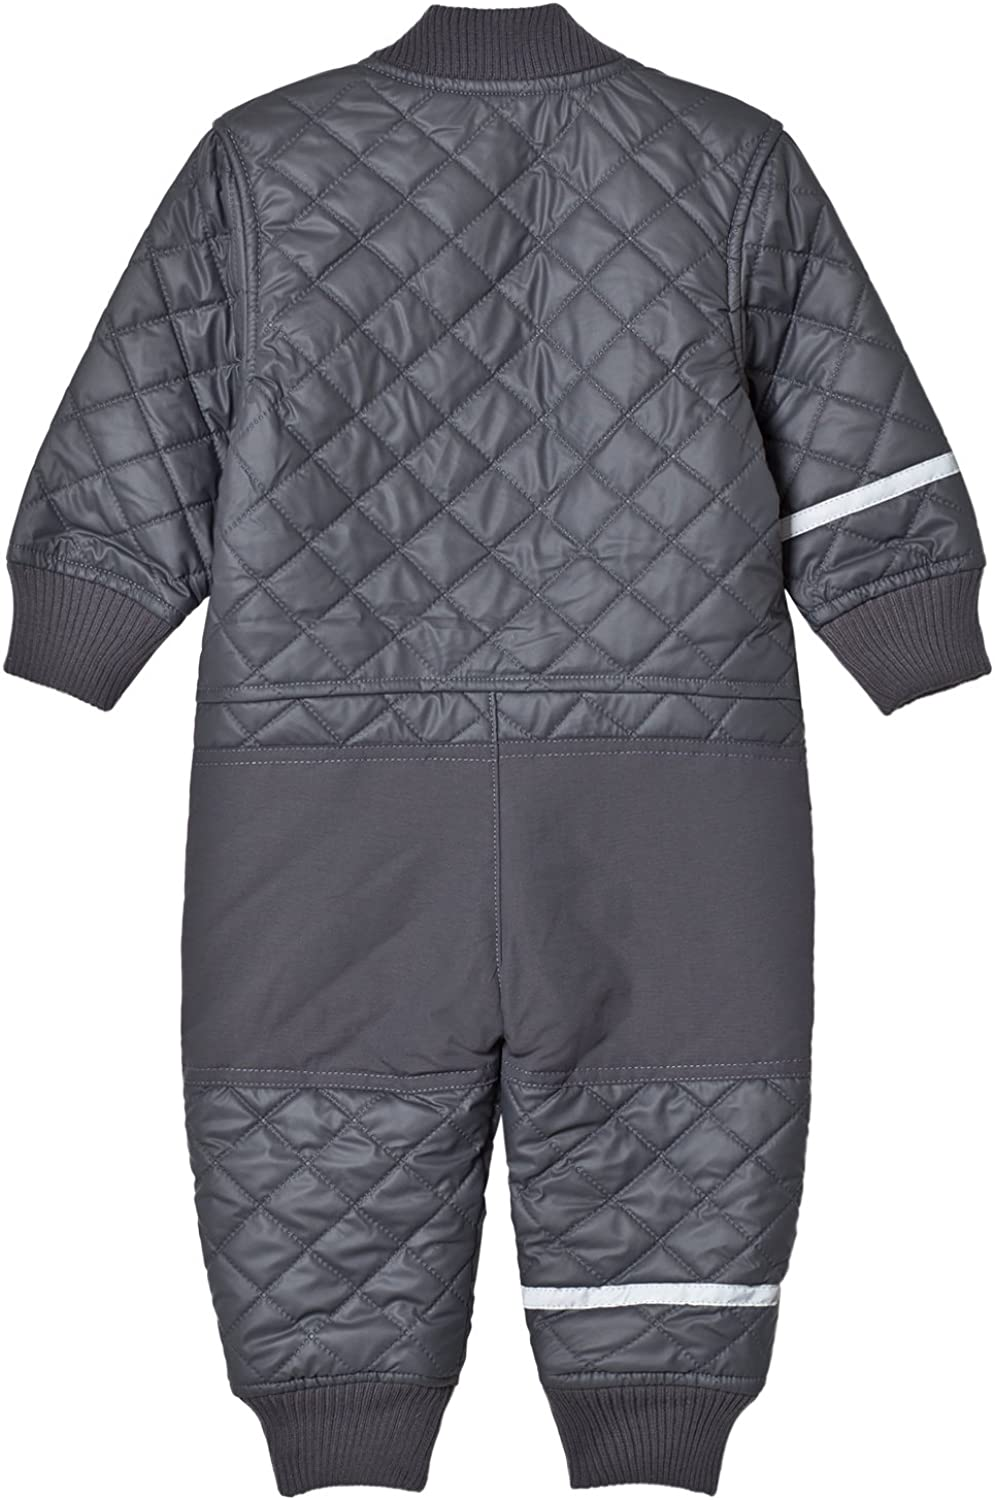 Boy Girl Unisex Fleece Lining Age 9-24 Months Thermal PU Quilted Windproof Suit